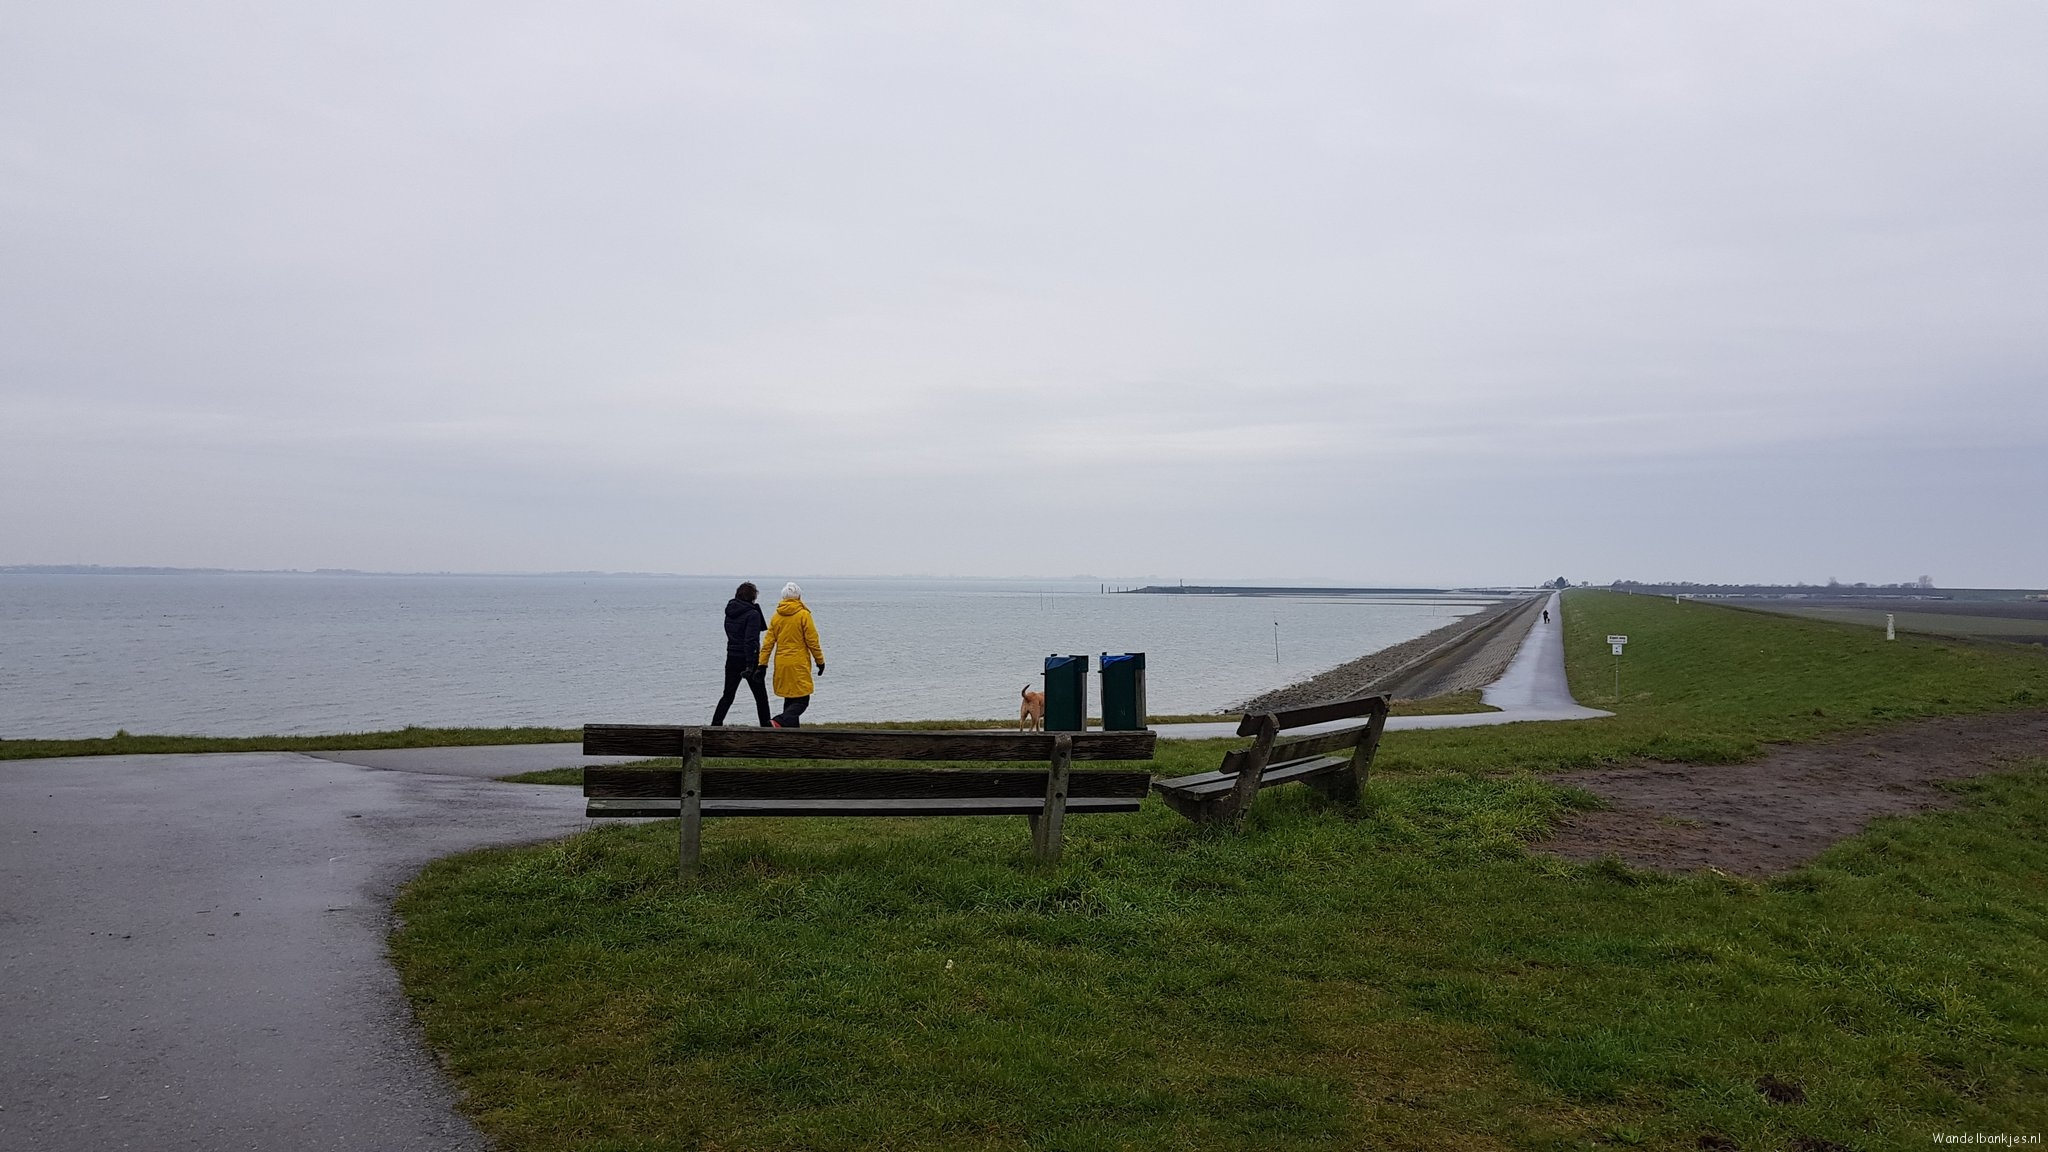 rt-wolfswandelplan-oosterschelde-op-tholen-walking-benches-https-t-co-9r2yo82wl8